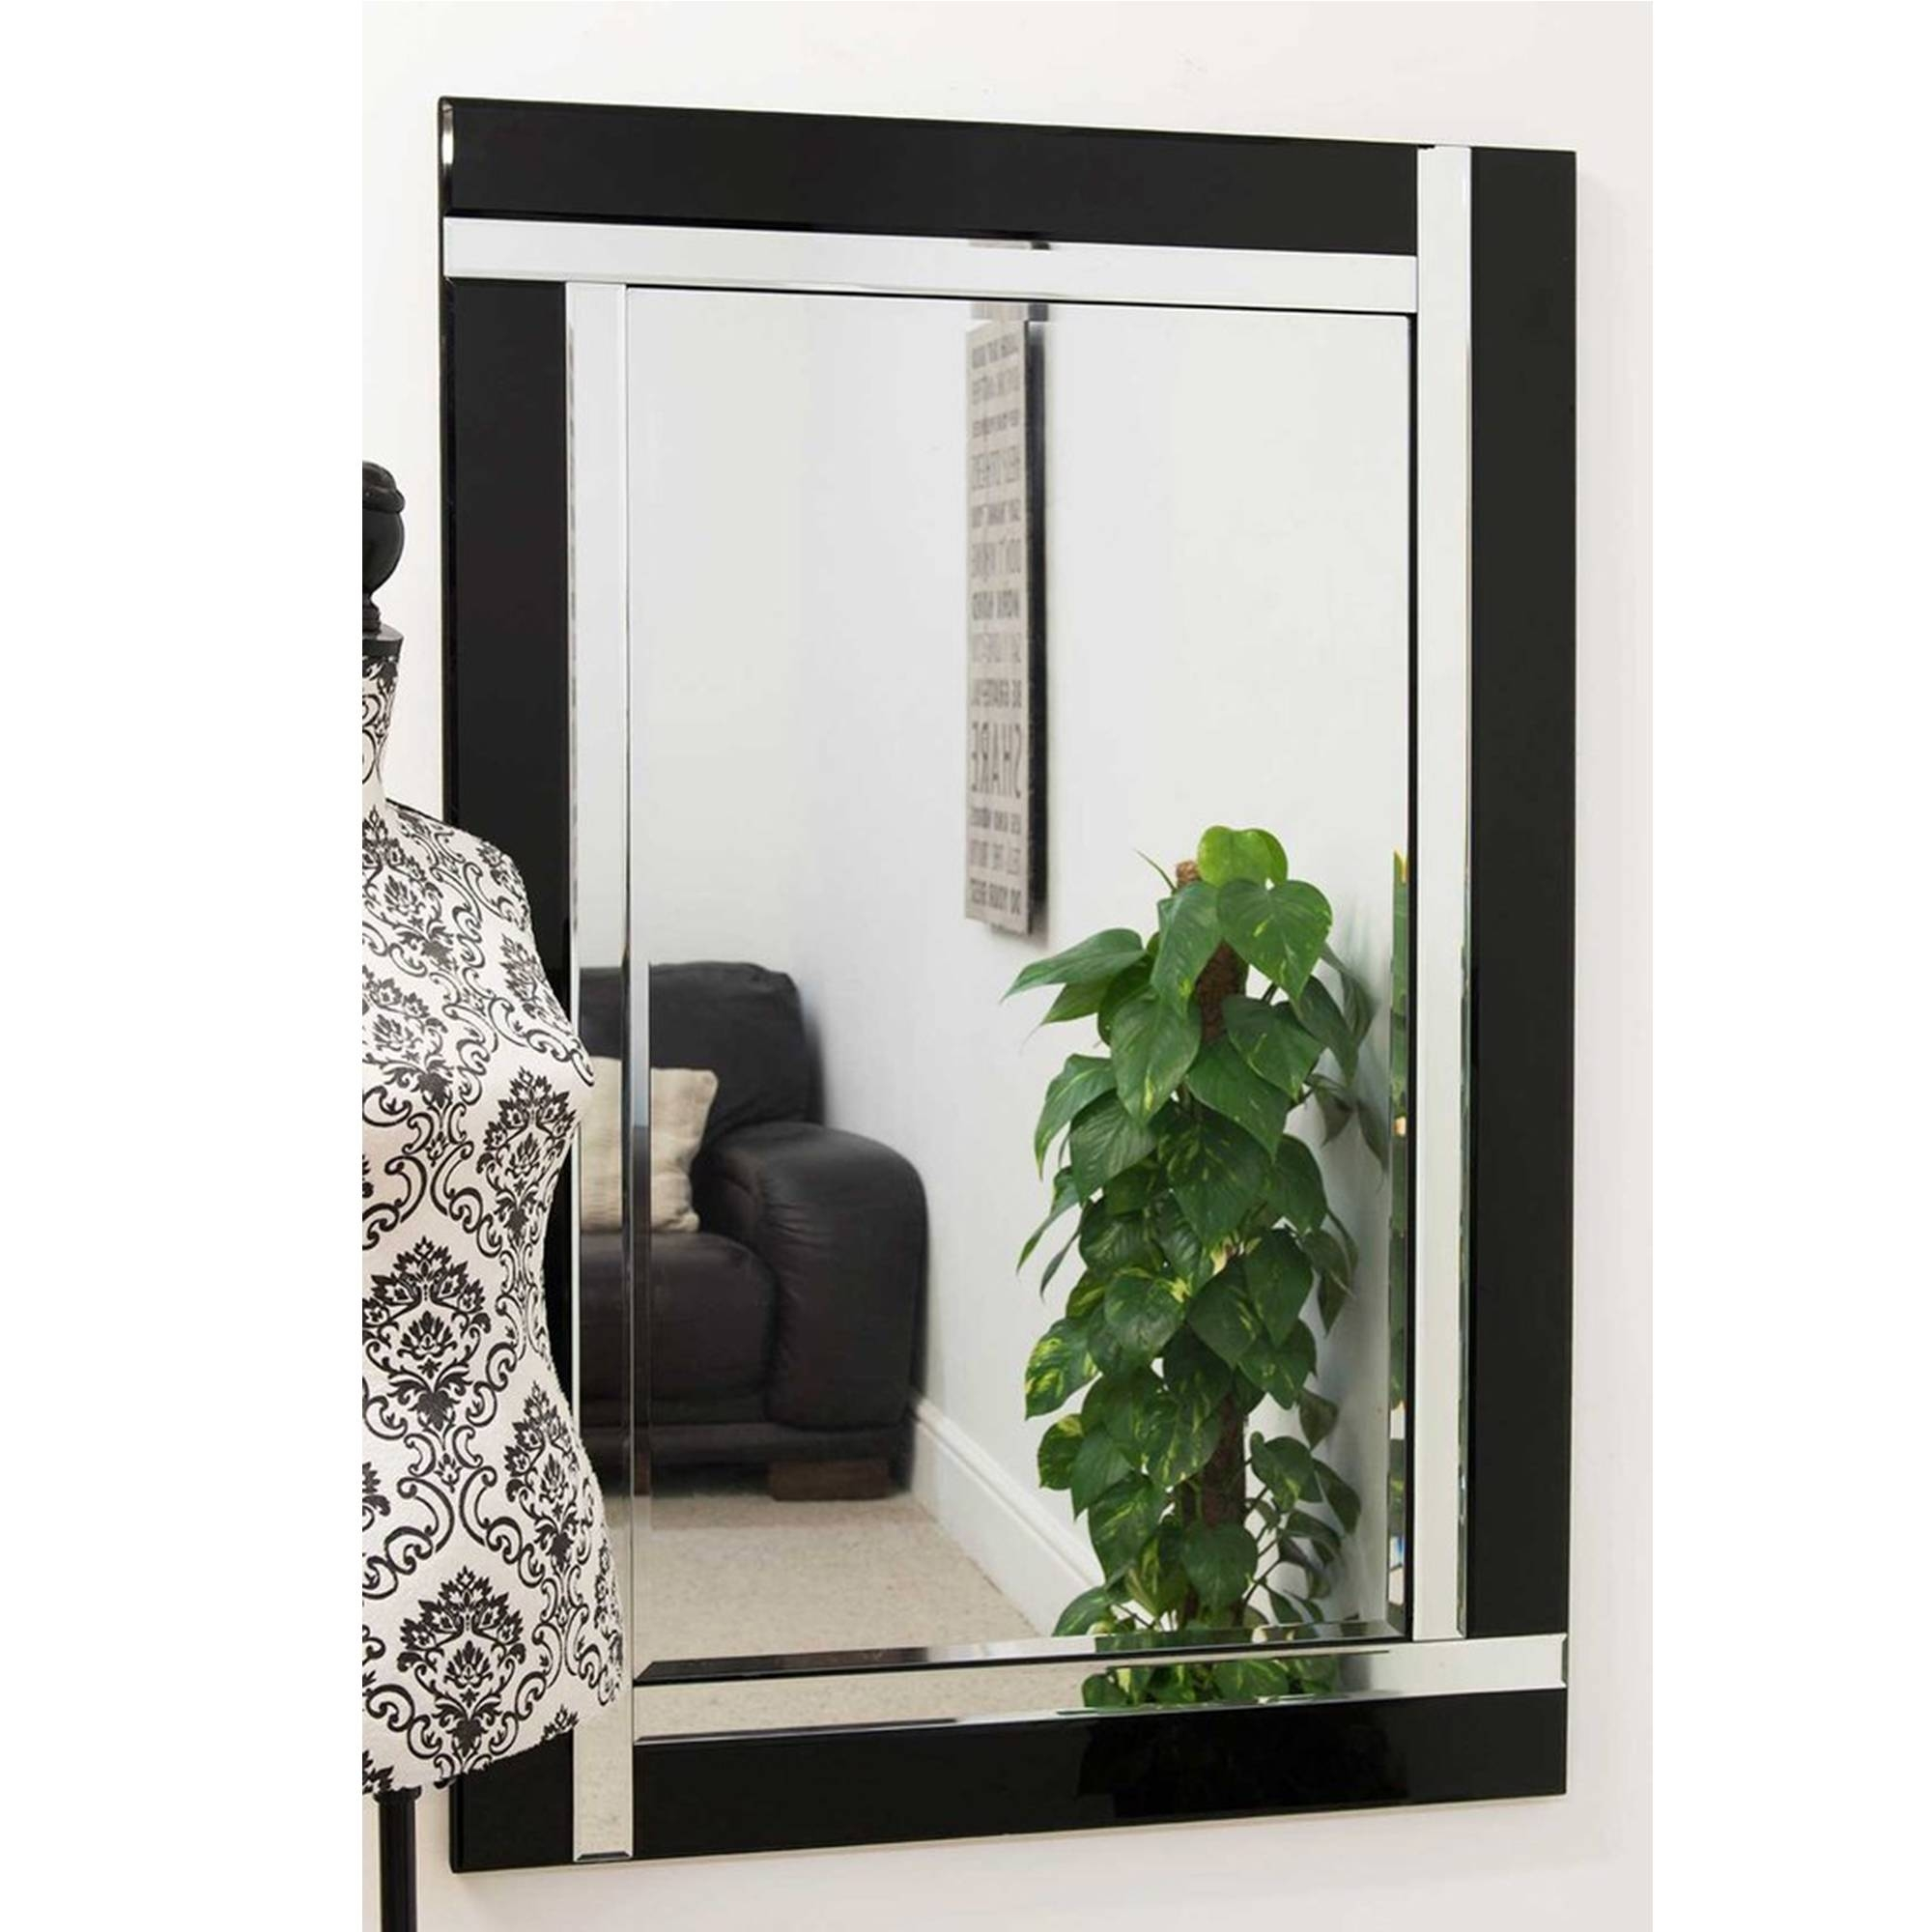 Large Contemporary Black Venetian Mirror | Decorative Venetian Mirrors intended for Large Venetian Mirrors (Image 8 of 25)